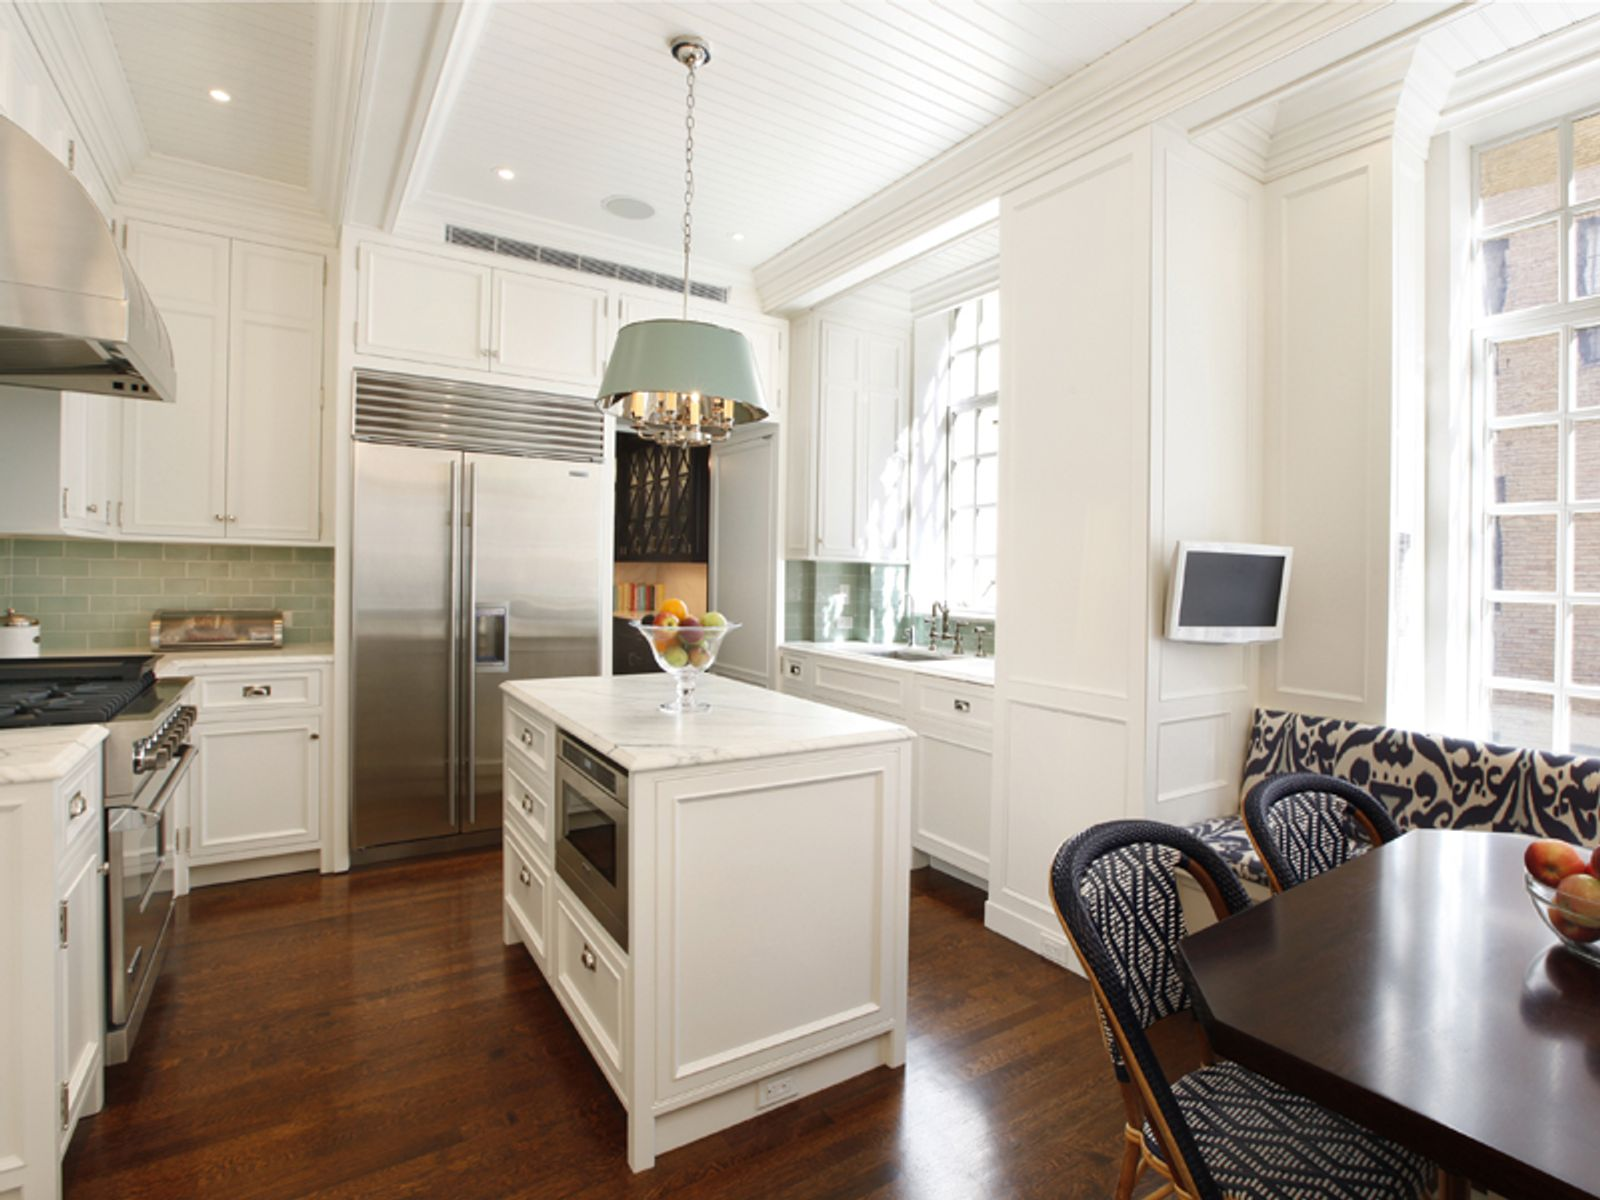 Superb Renovation at 812 Park Ave